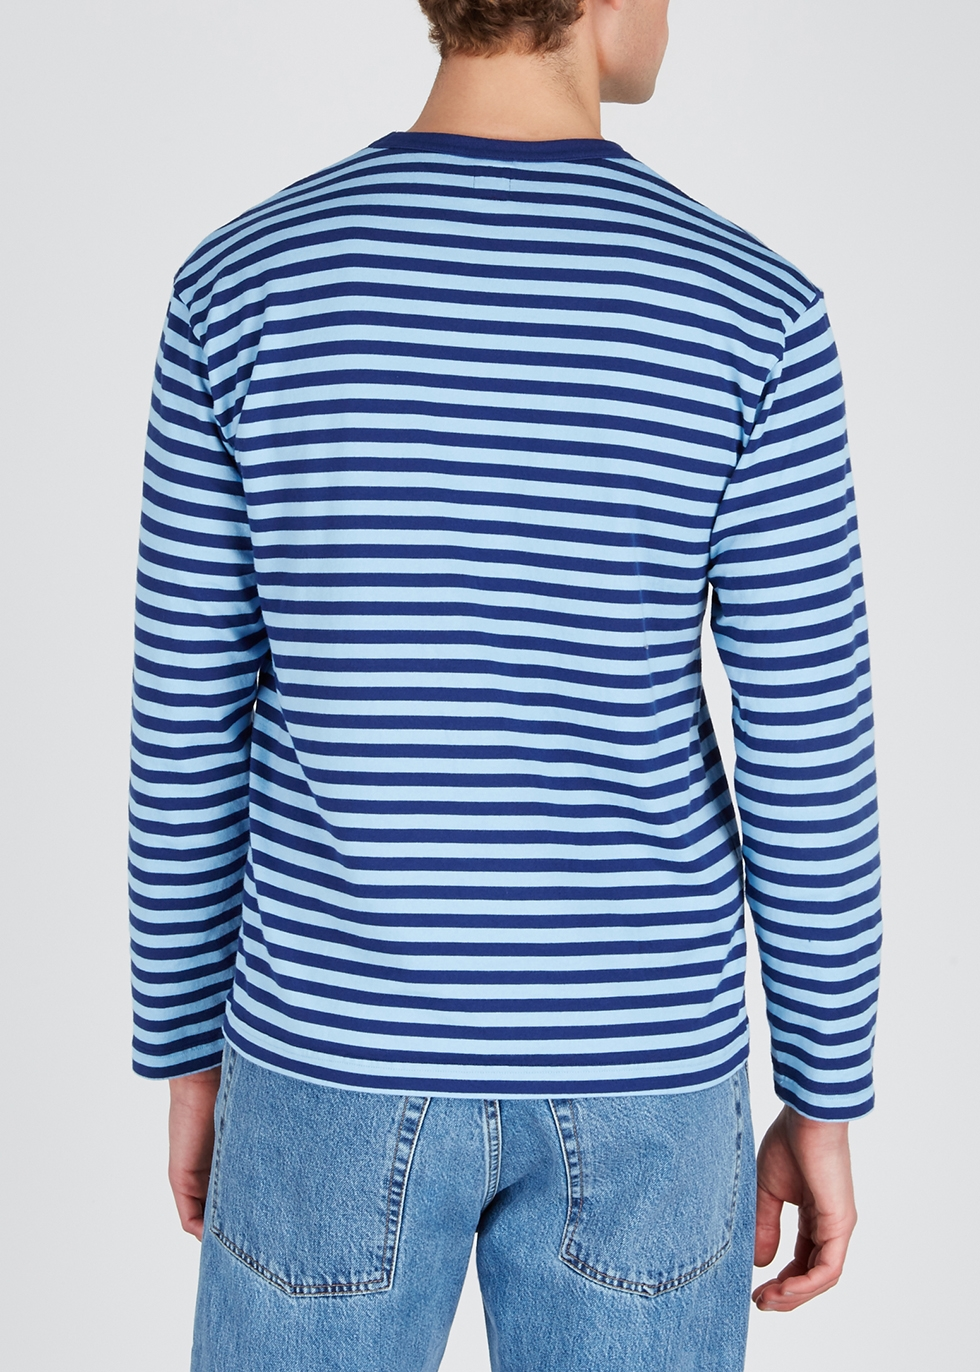 Blue striped cotton top - Human Made